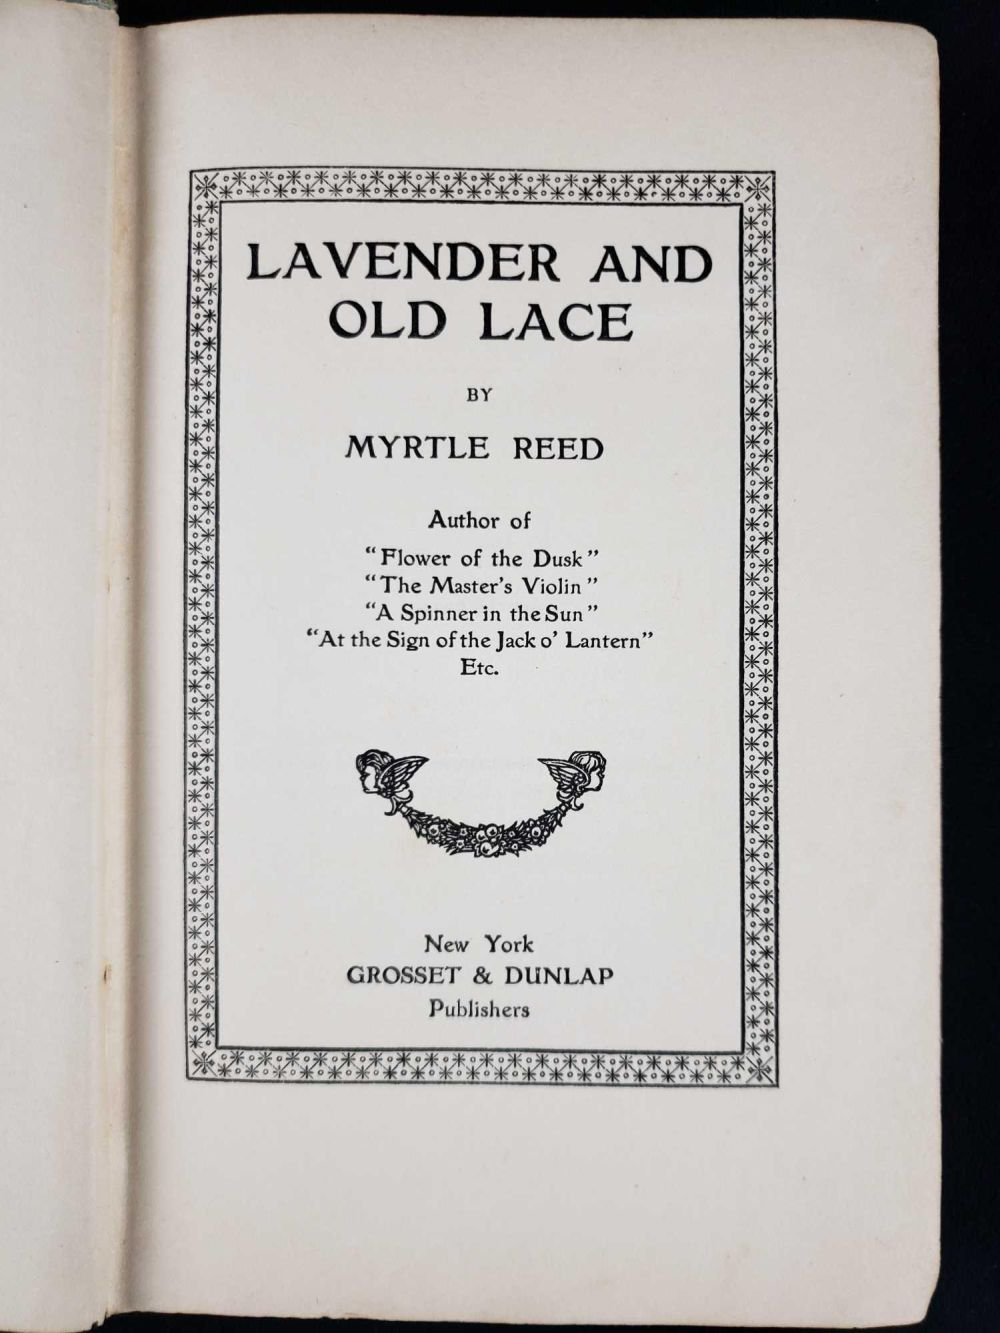 Lot 1046: Lavender and Old Lace by Myrtle Reed 1902 Hardcover Book First Edition